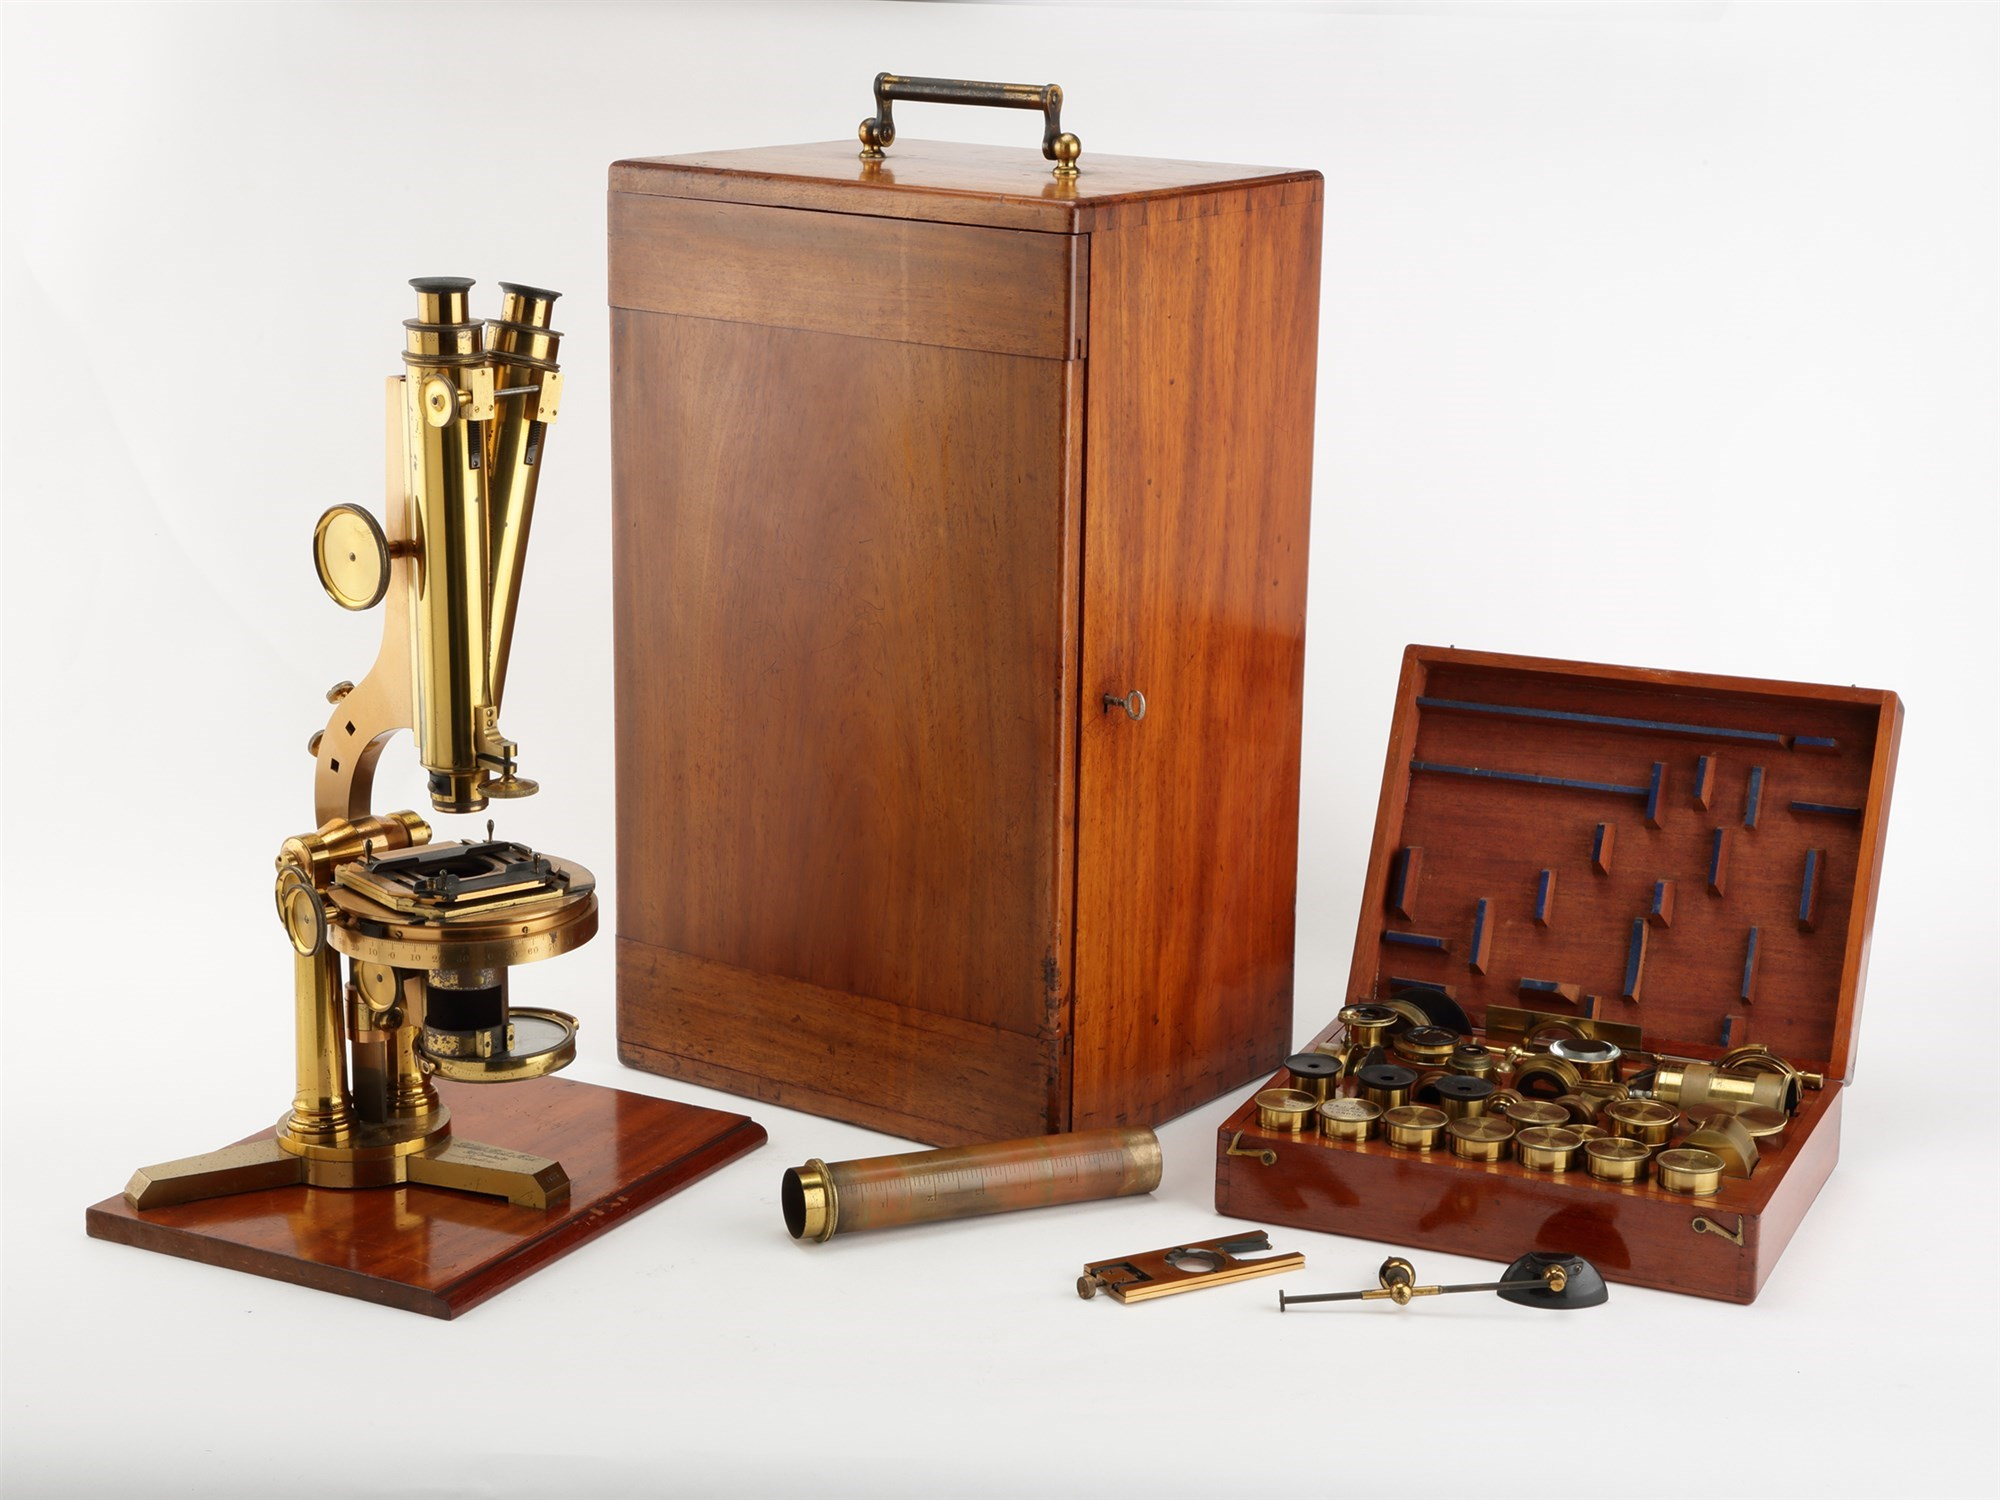 A Victorian lacquered brass binocular microscope, by Smith, Beck & Beck